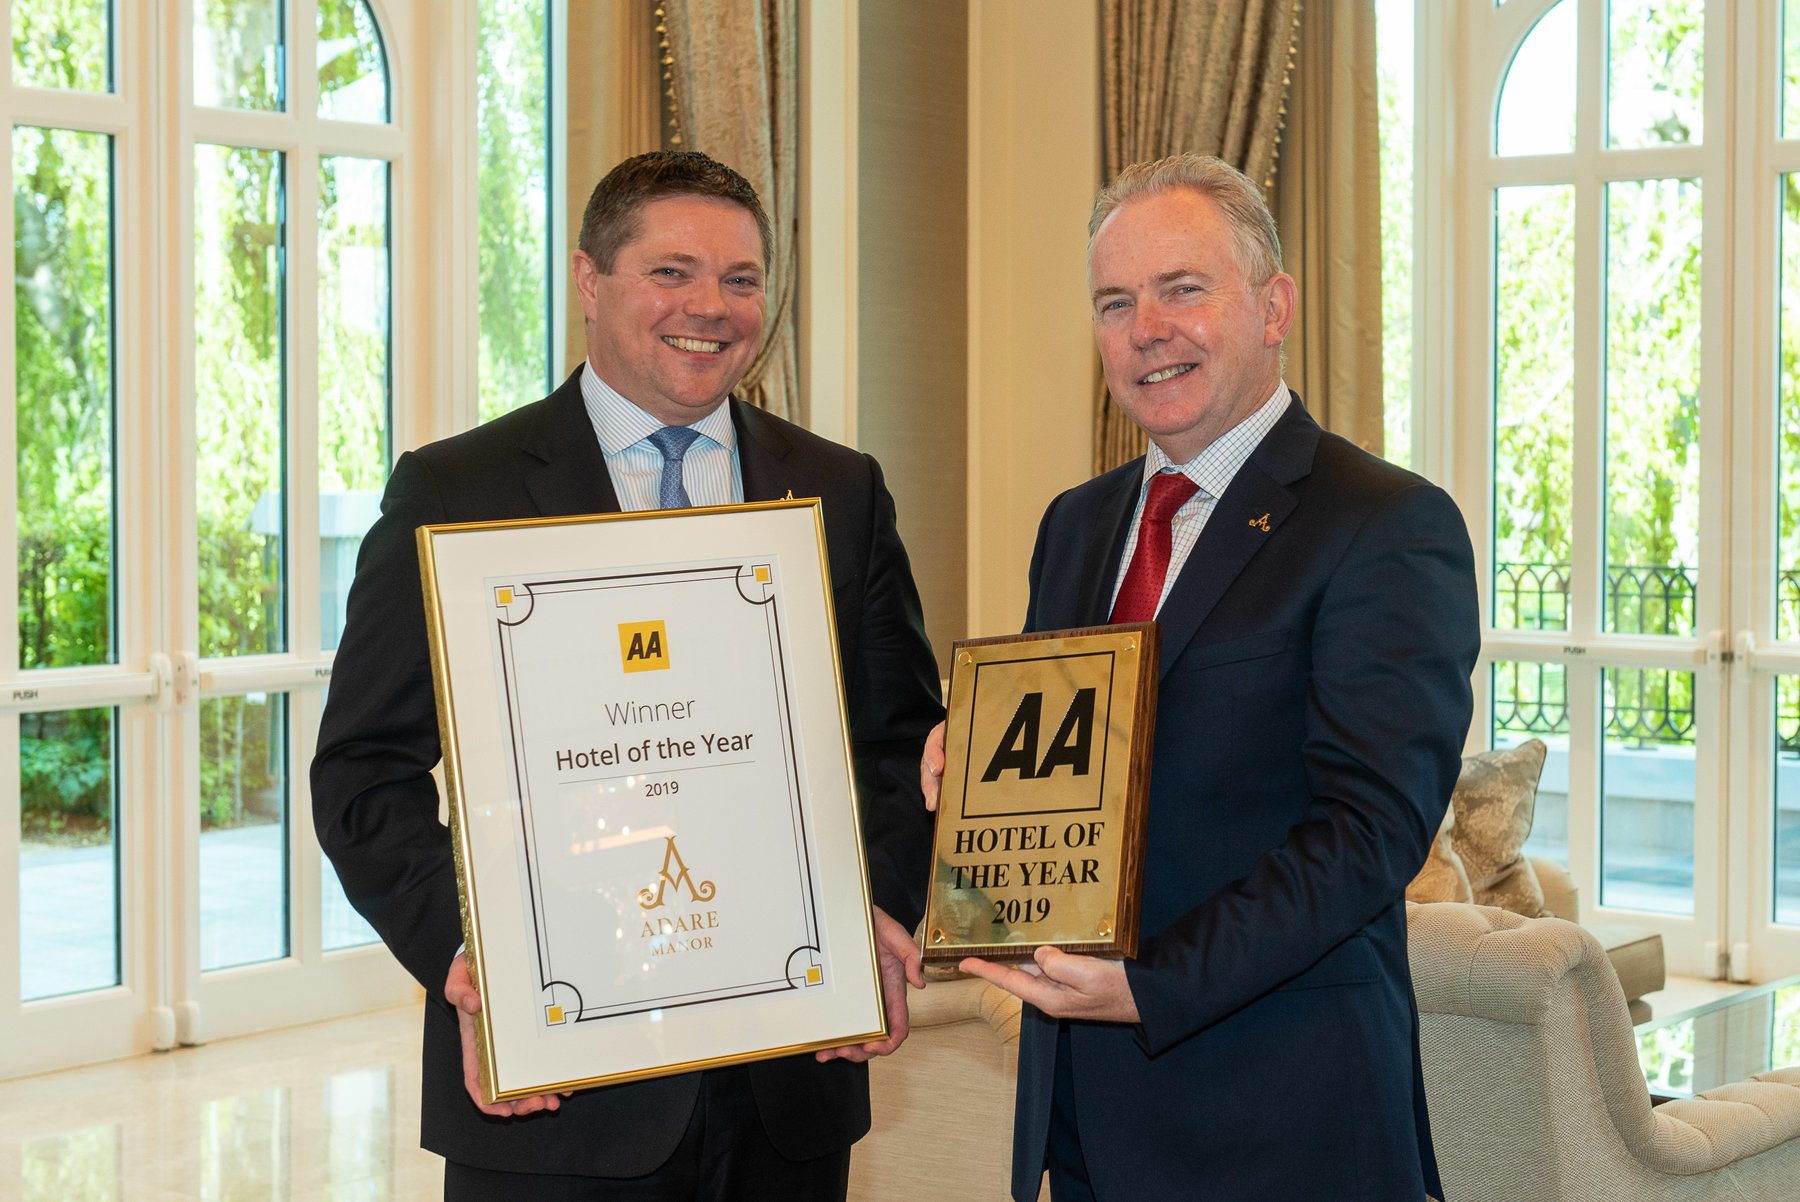 AA Hotel of the Year 2019